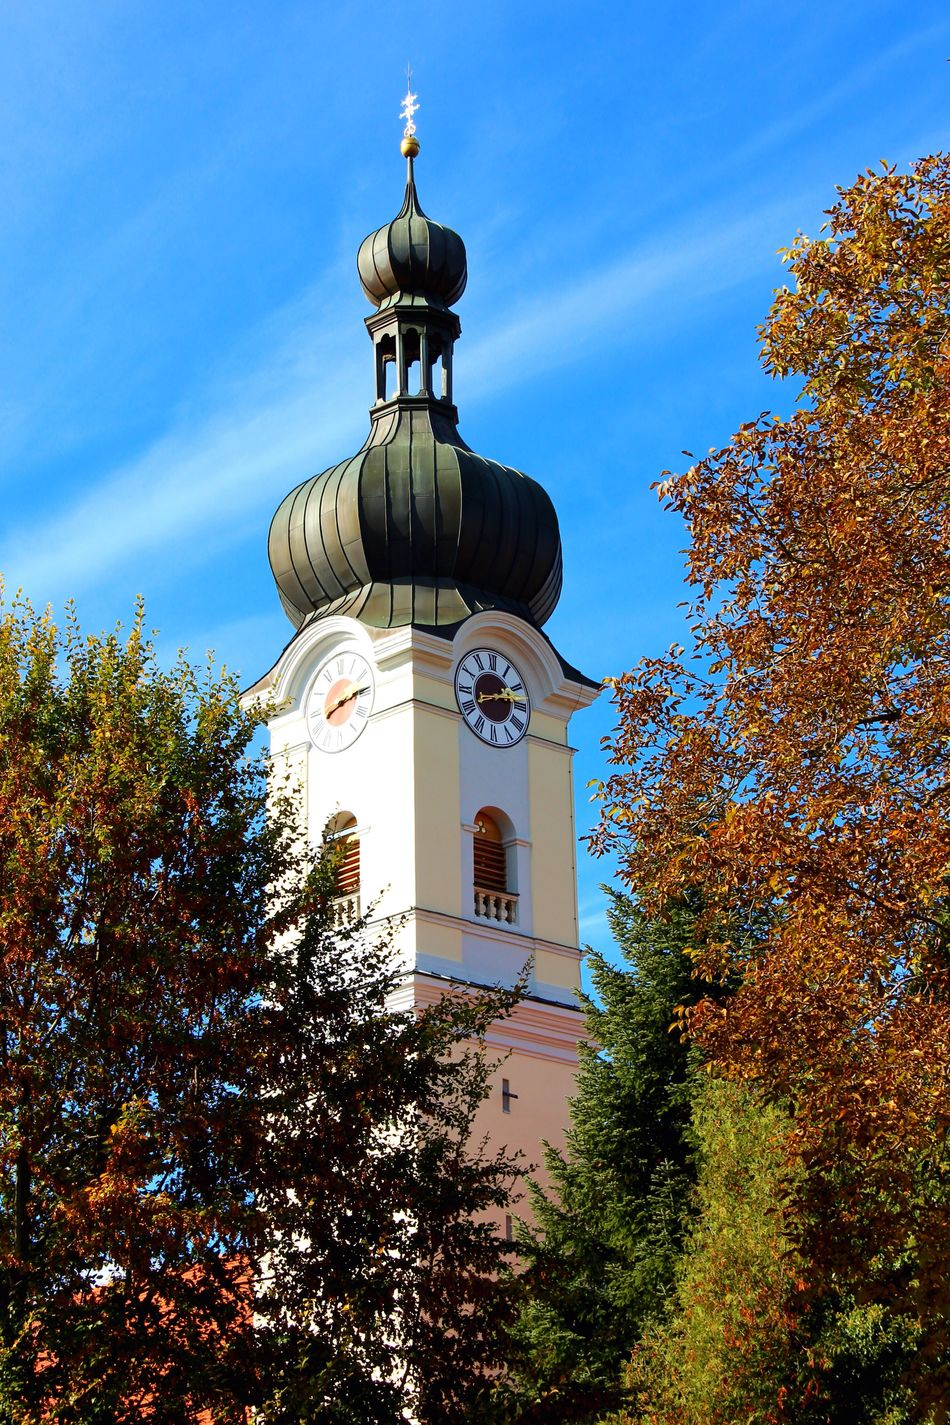 Tree Religion Architecture Built Structure Sky Building Exterior No People Place Of Worship Spirituality Outdoors Flower Nature Day Low Angle View Murnau Catch The Moment Catch The Instant... Murnau Am Staffelsee Chirch Kirche Autumn Autumn Colors Autumn Collection Nature Photography Nature_collection